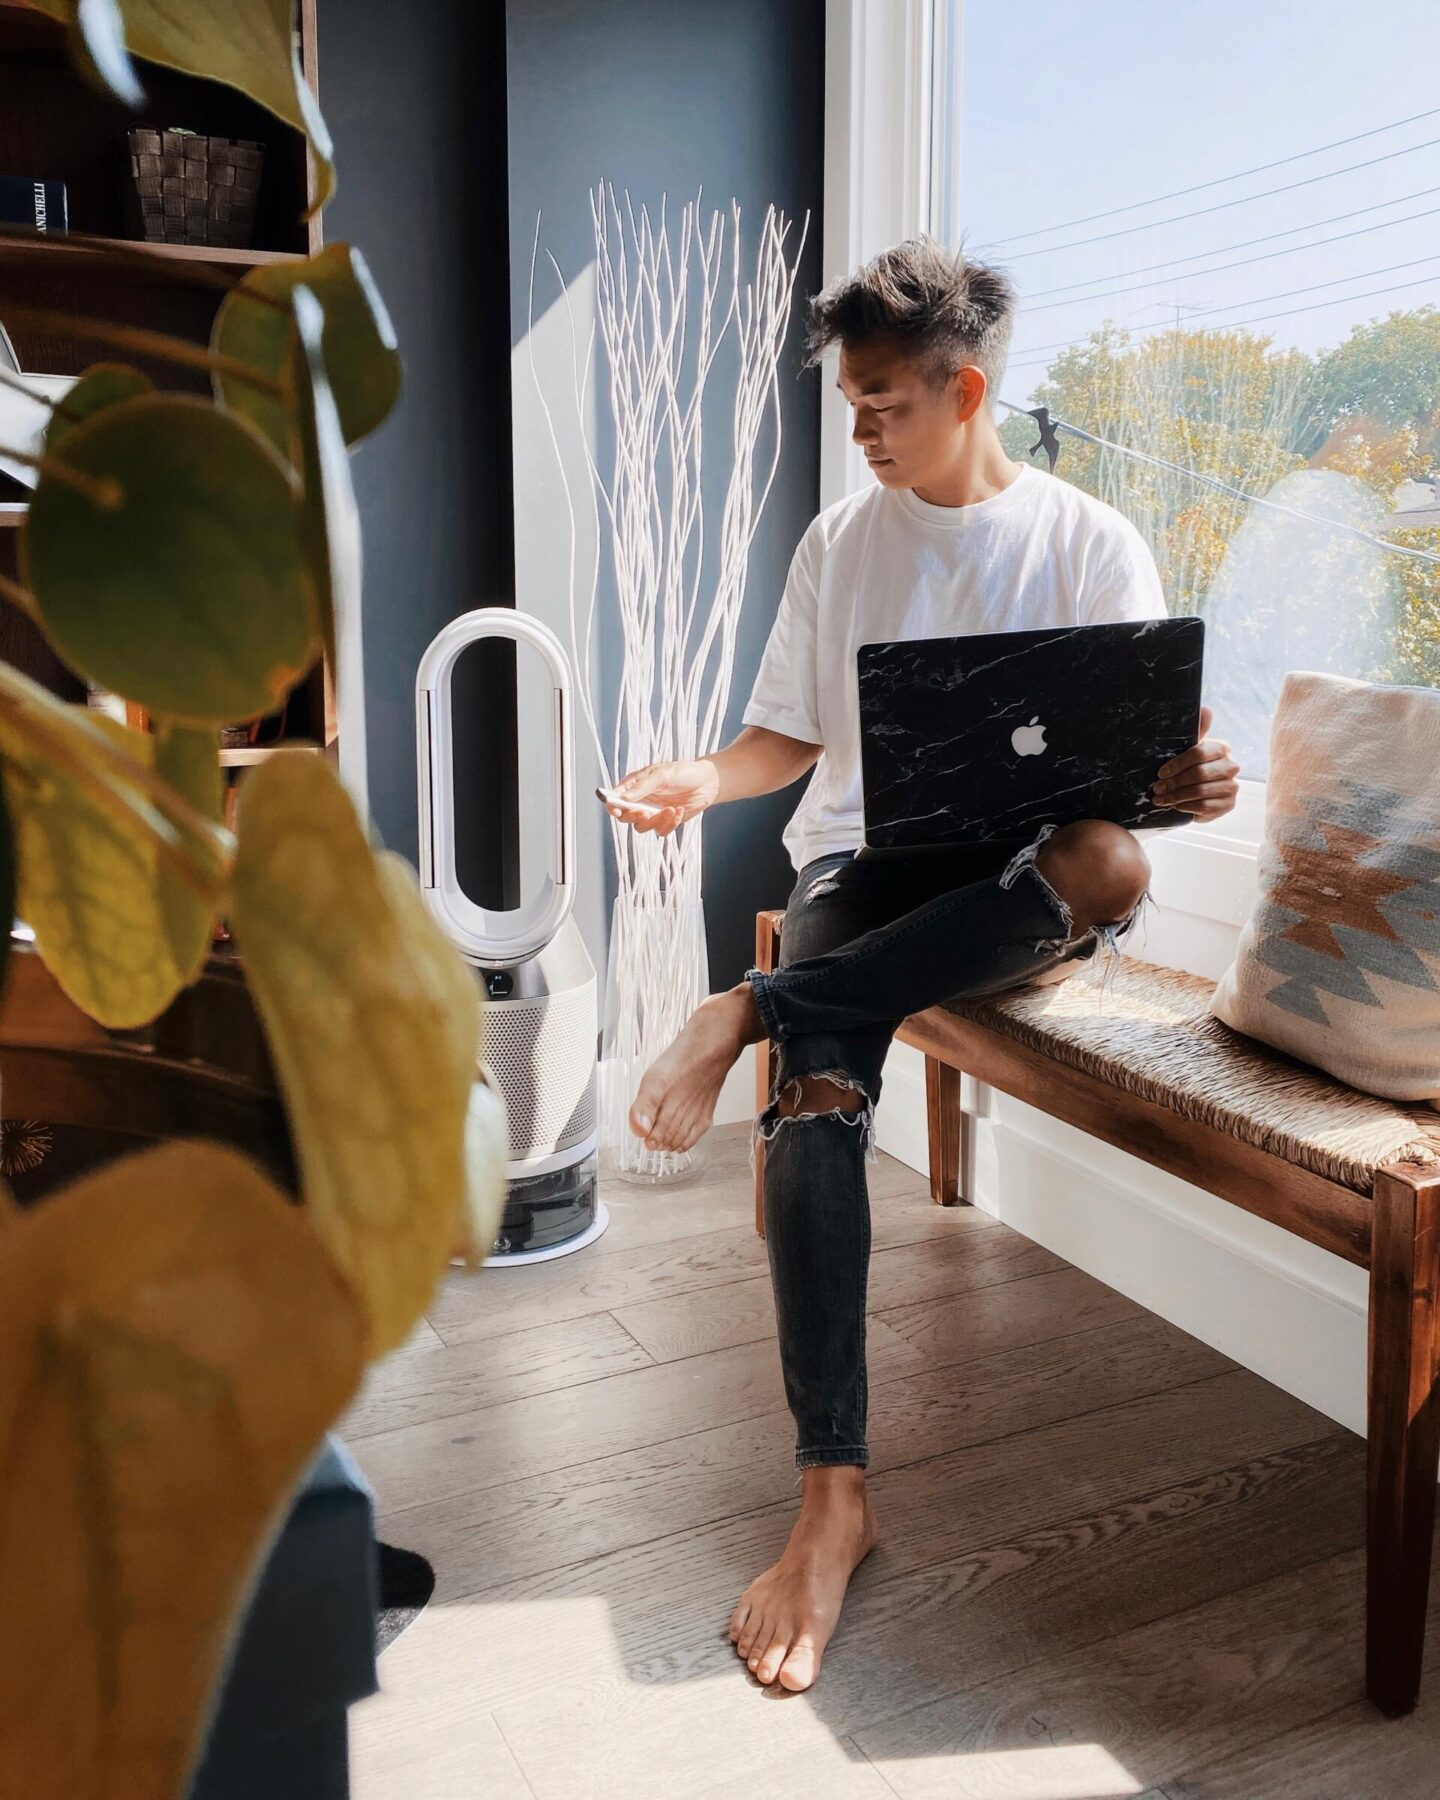 Refresh the air in your home with the Dyson Pure Humidify+Cool Air Purifier from Best Buy